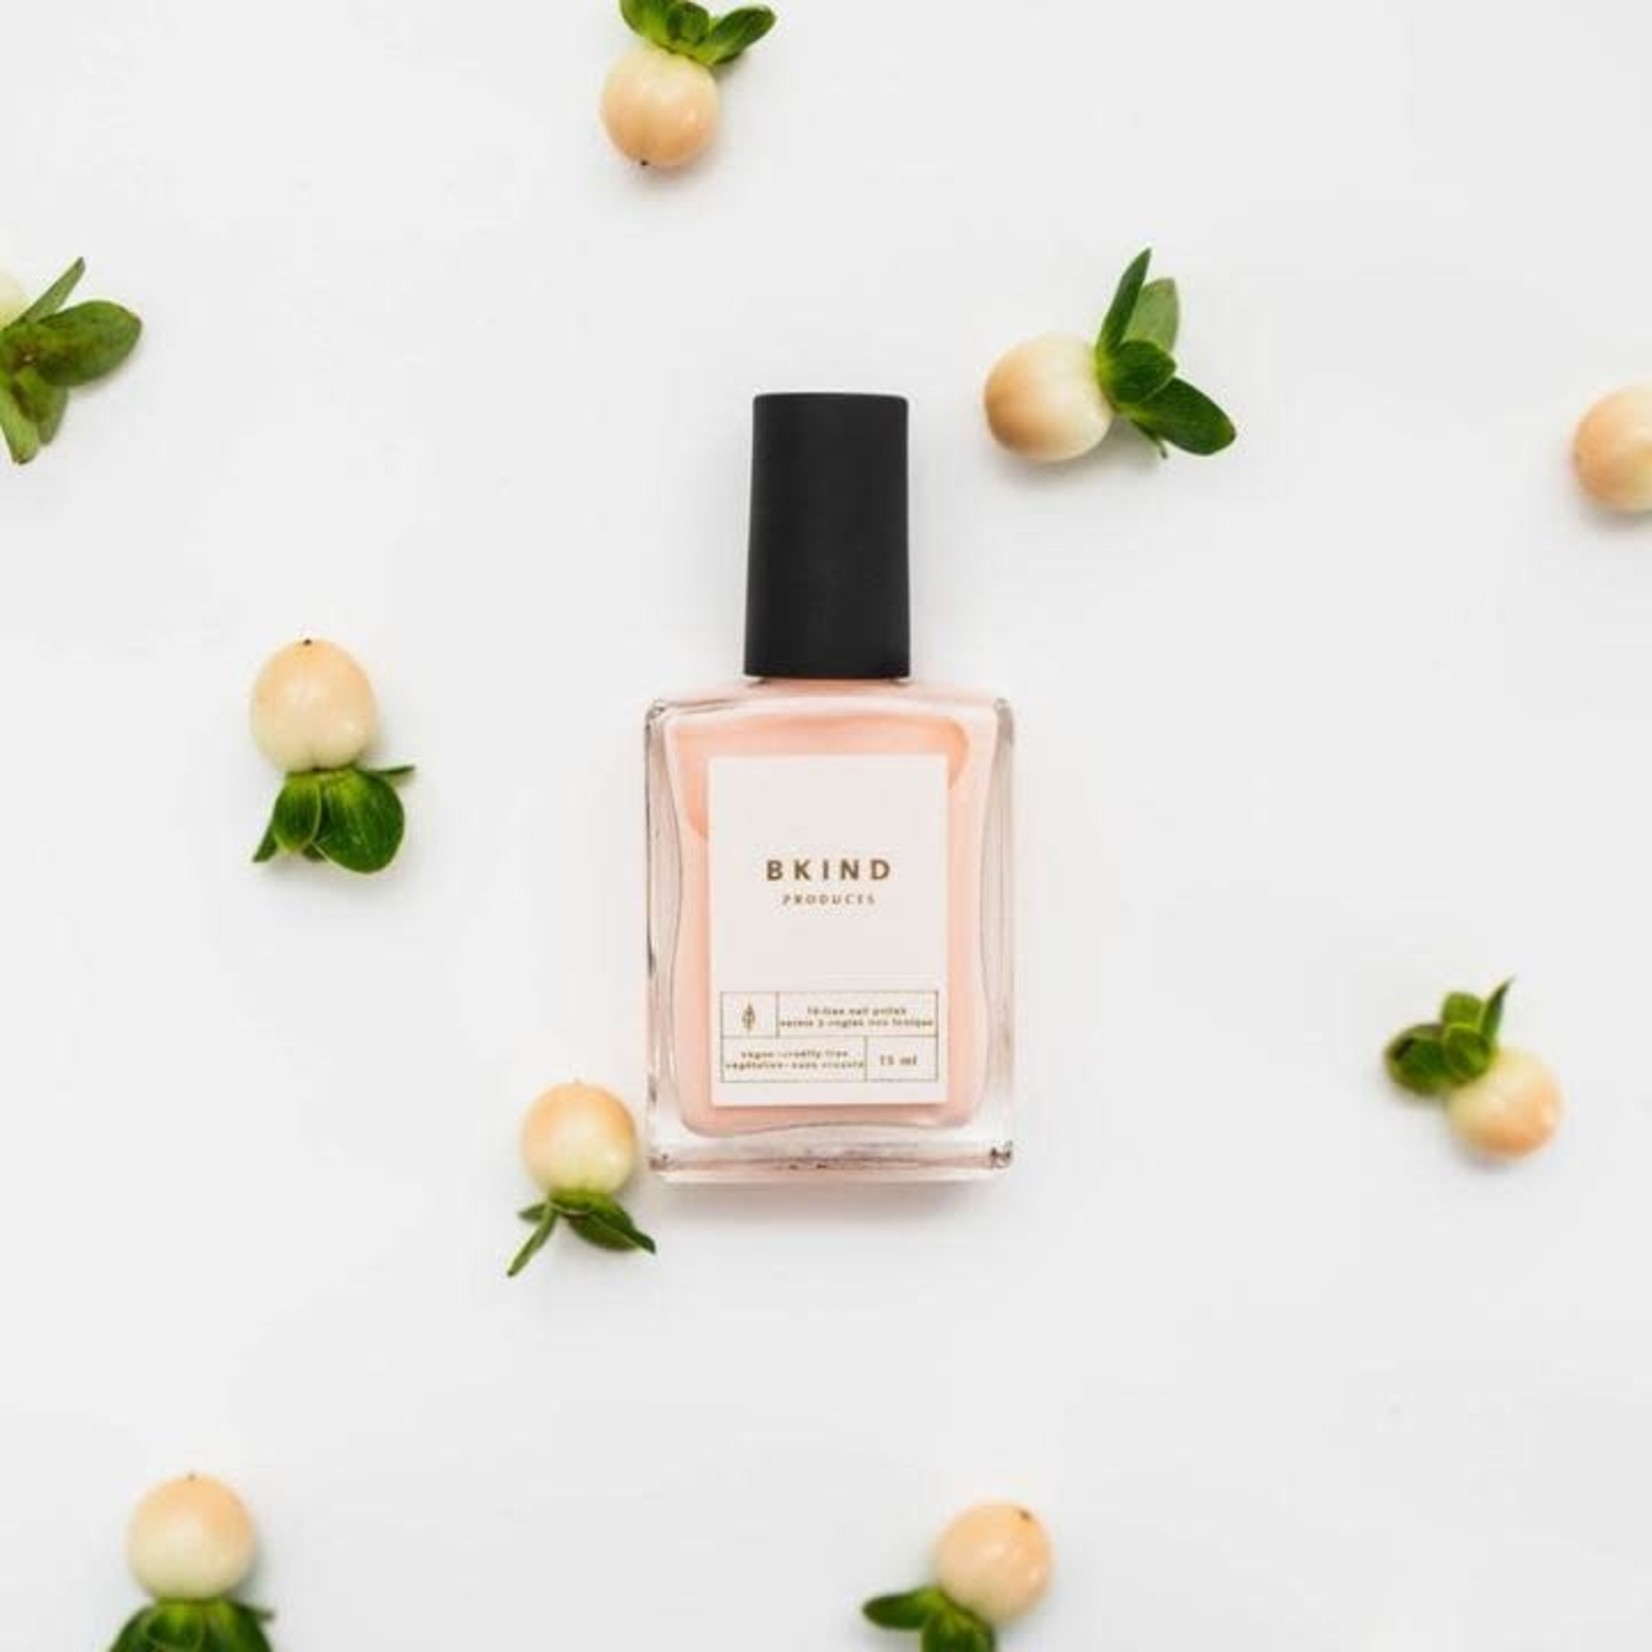 BKIND BKIND vernis à ongles - French pink